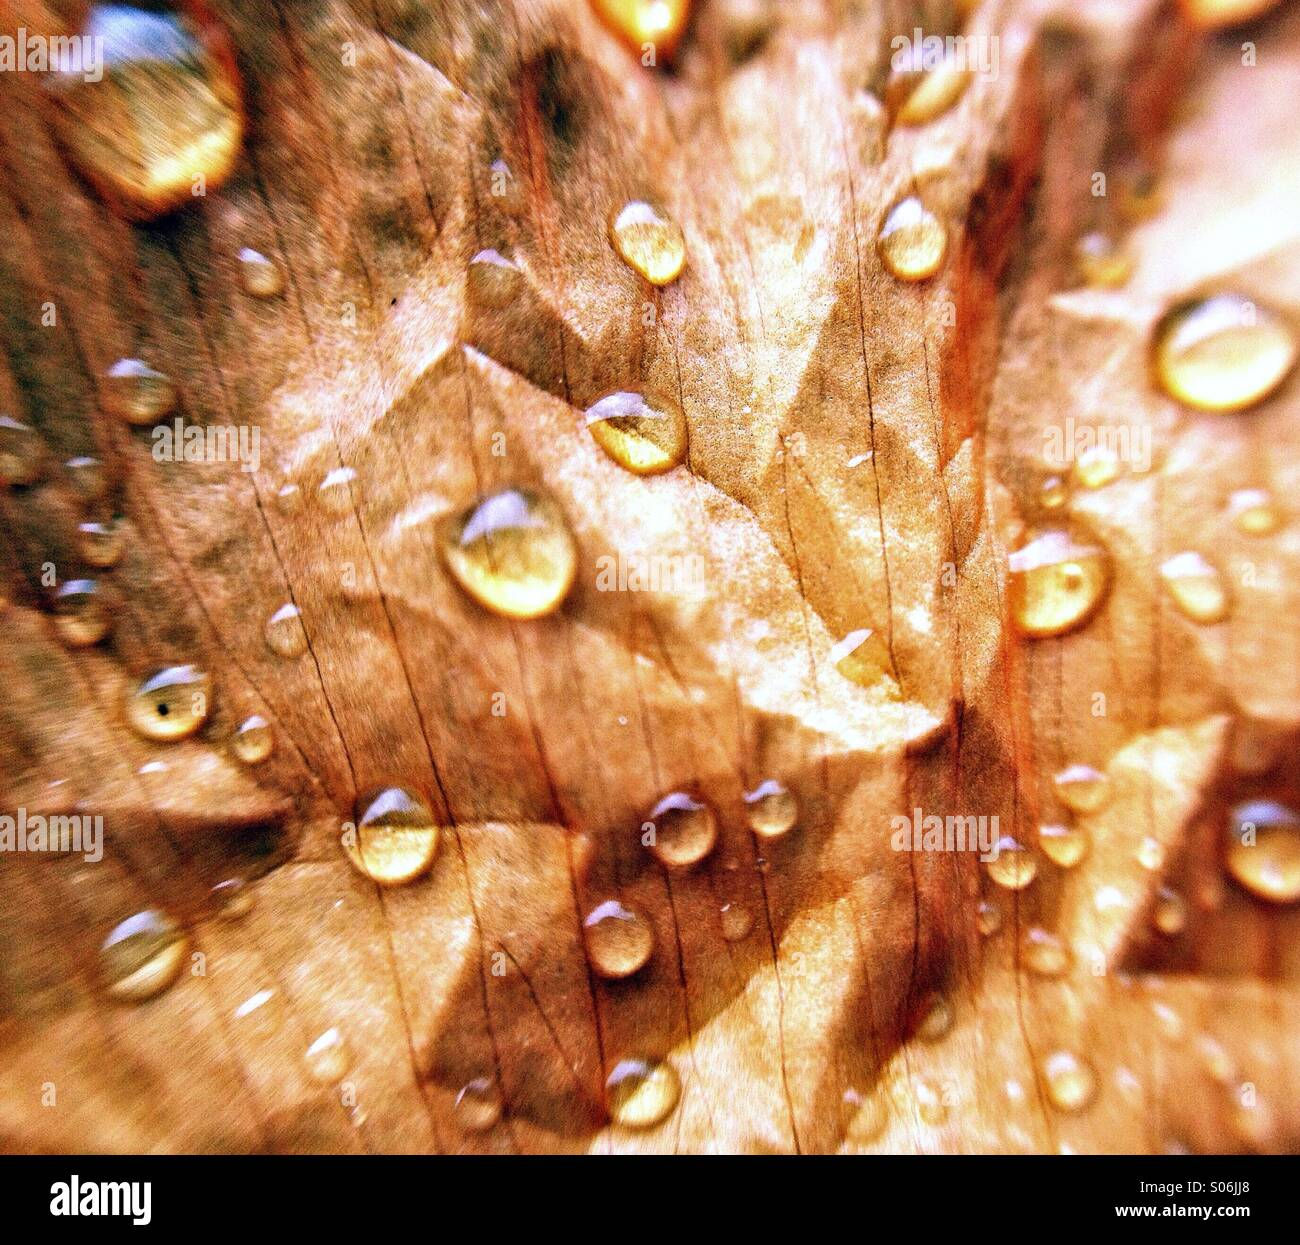 Water droplets texture - Stock Image